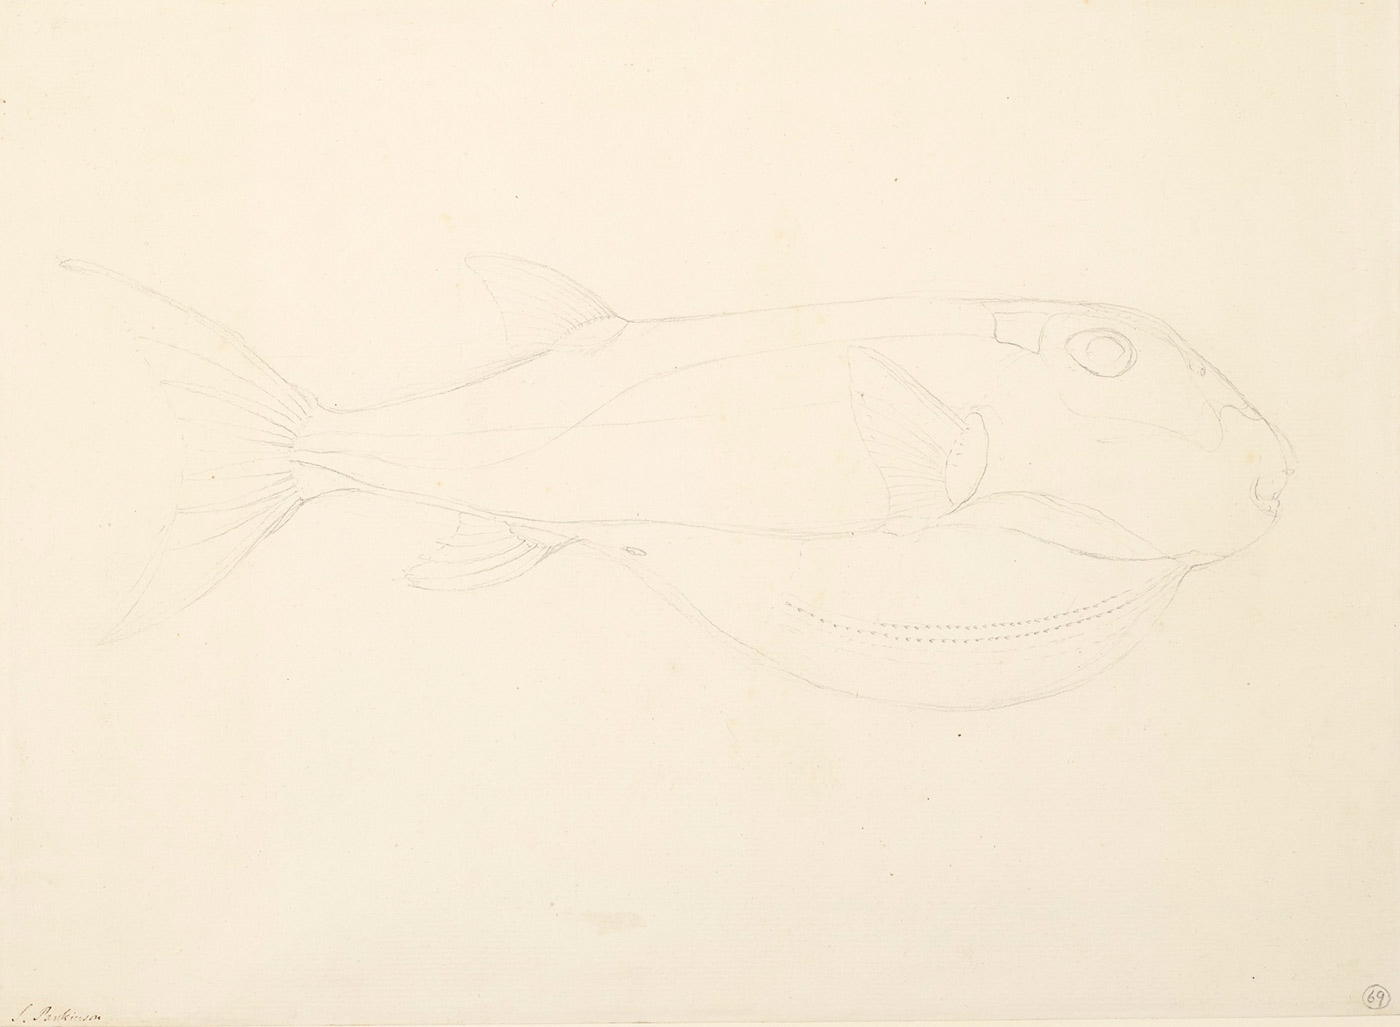 Drawing of a fish with a protruding belly area. - click to view larger image